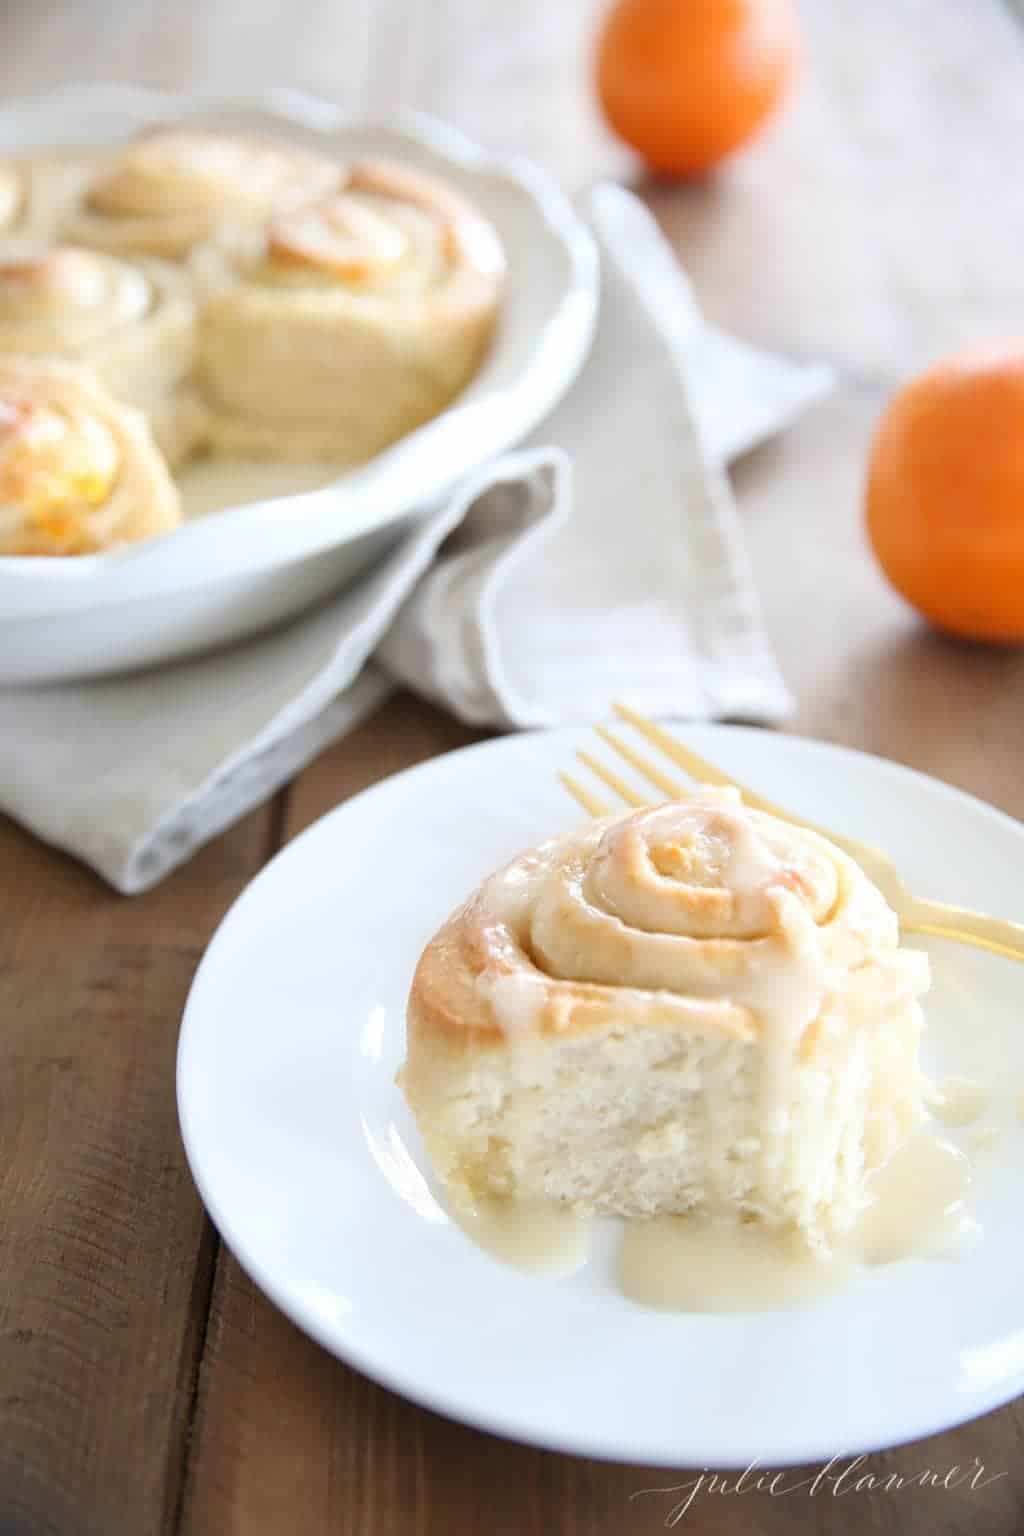 orange rolls with glaze on white plate and fork on the plate